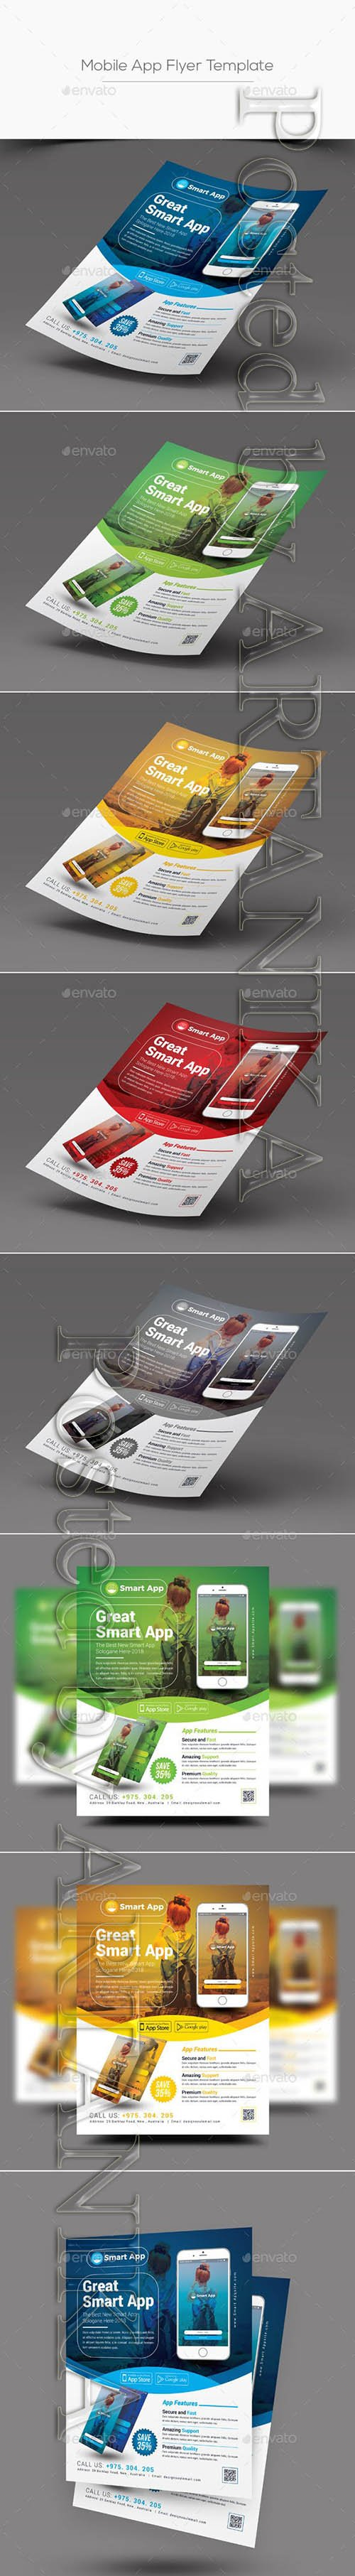 Mobile App Flyer Template 20692404